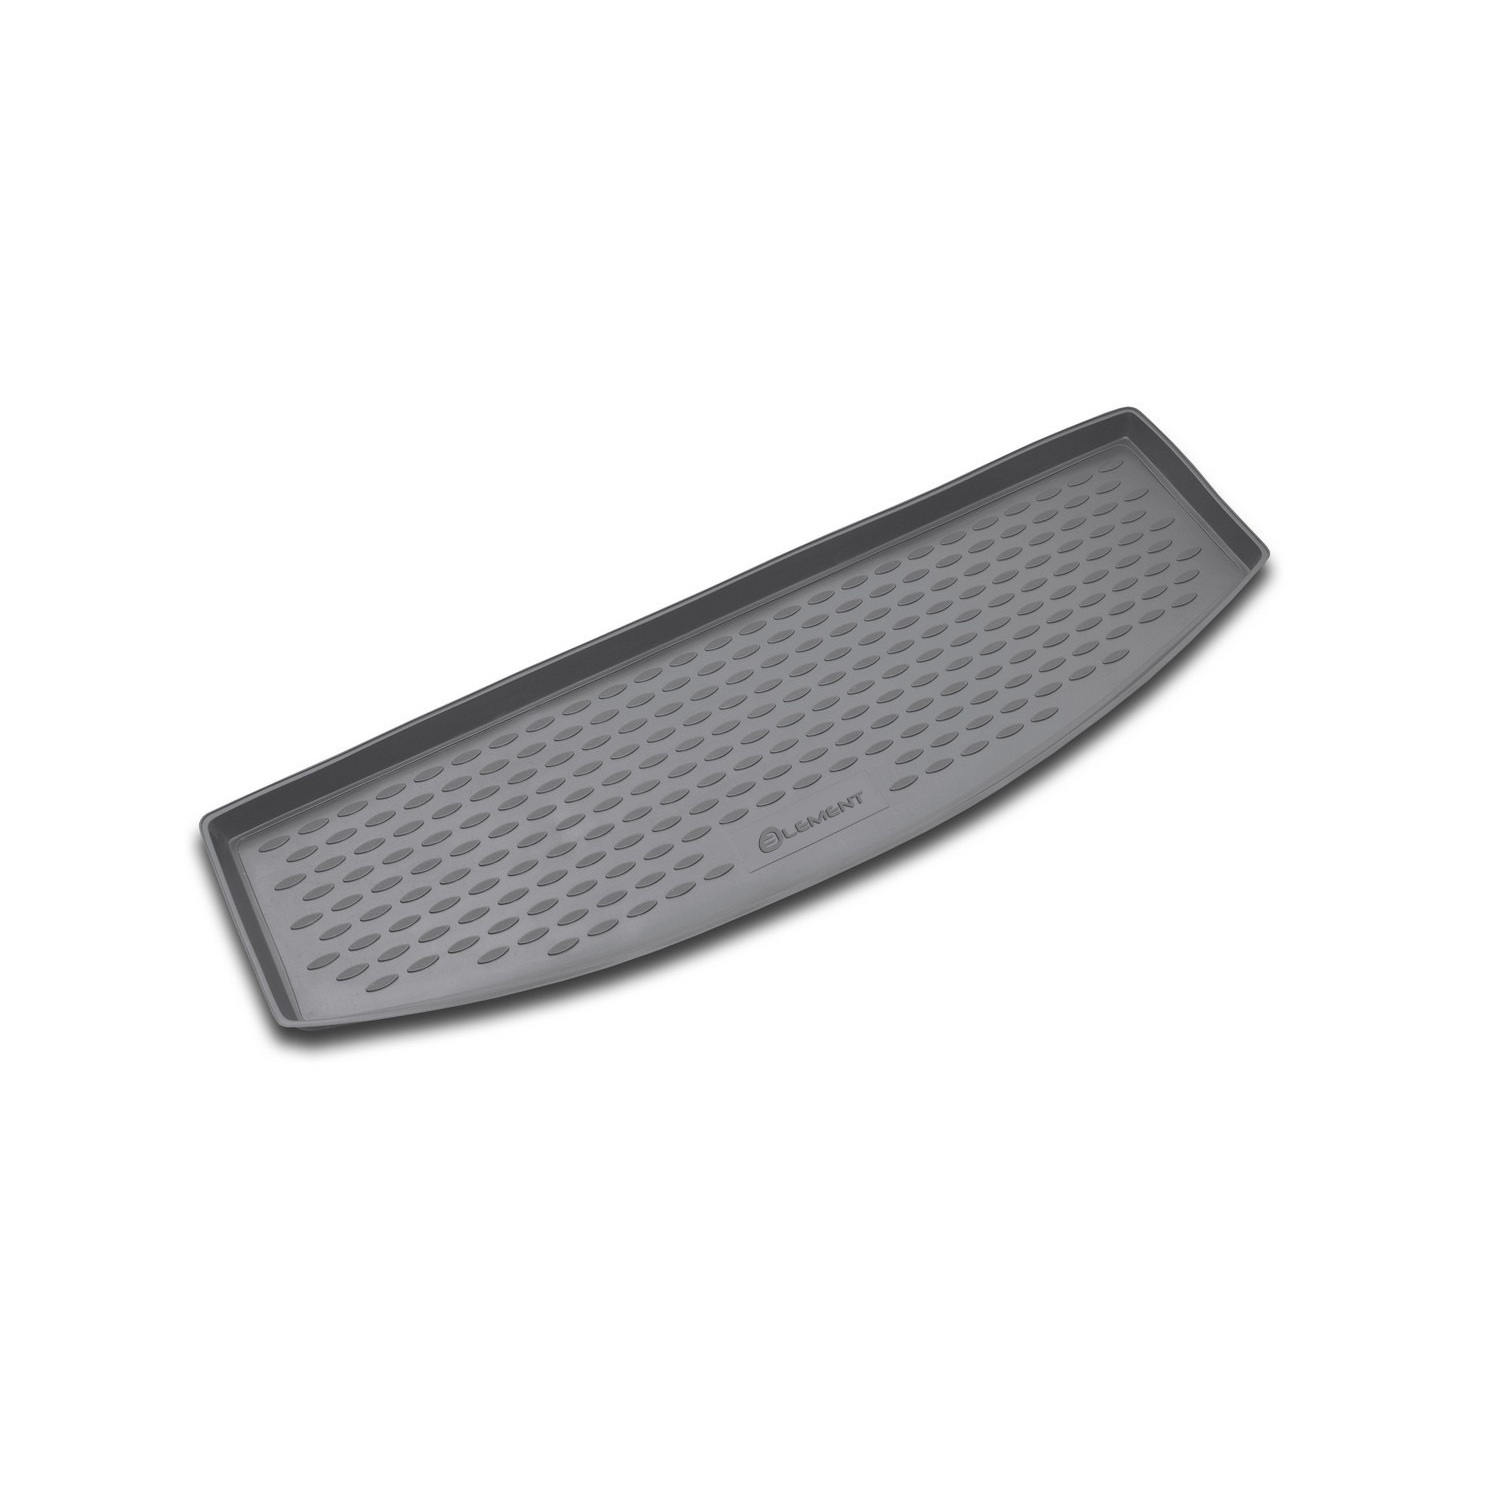 Trunk Mat For VW Touran (I) 2003-2010, (II) 2010-2015 MV. 5 Seats. NLC.51.10.B14